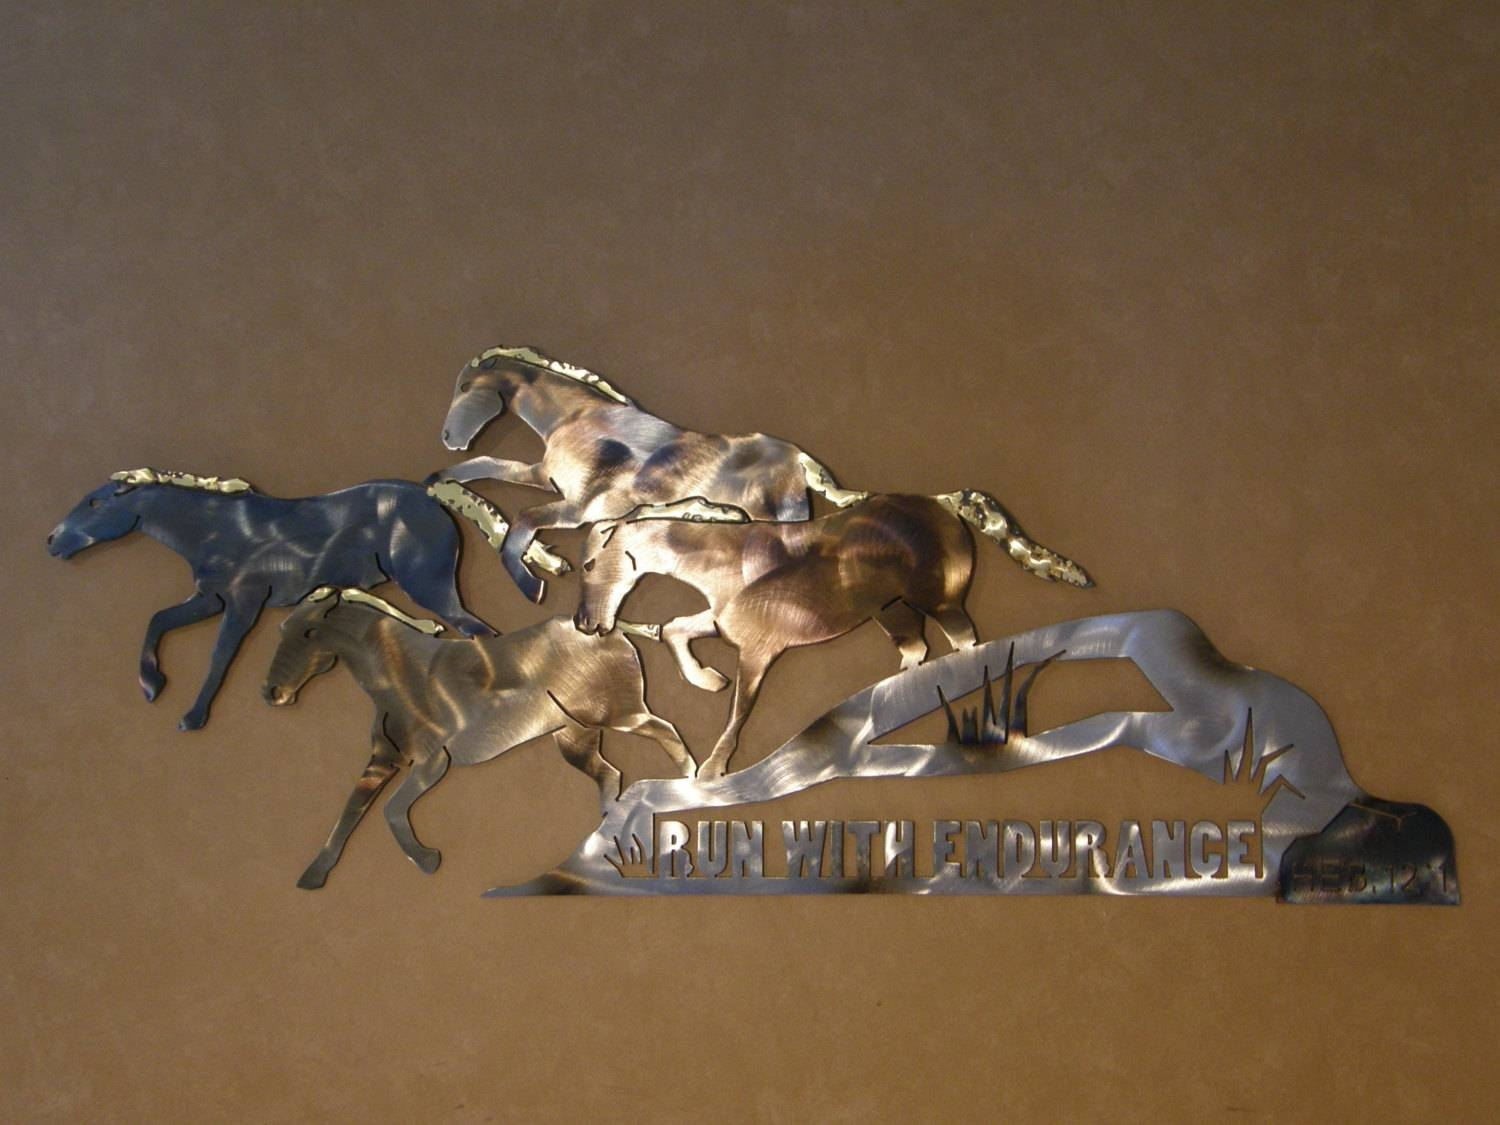 Christian Metal Wall Art Sculpture Of Running Horses For 2018 Metal Wall Art Sculptures (View 6 of 20)